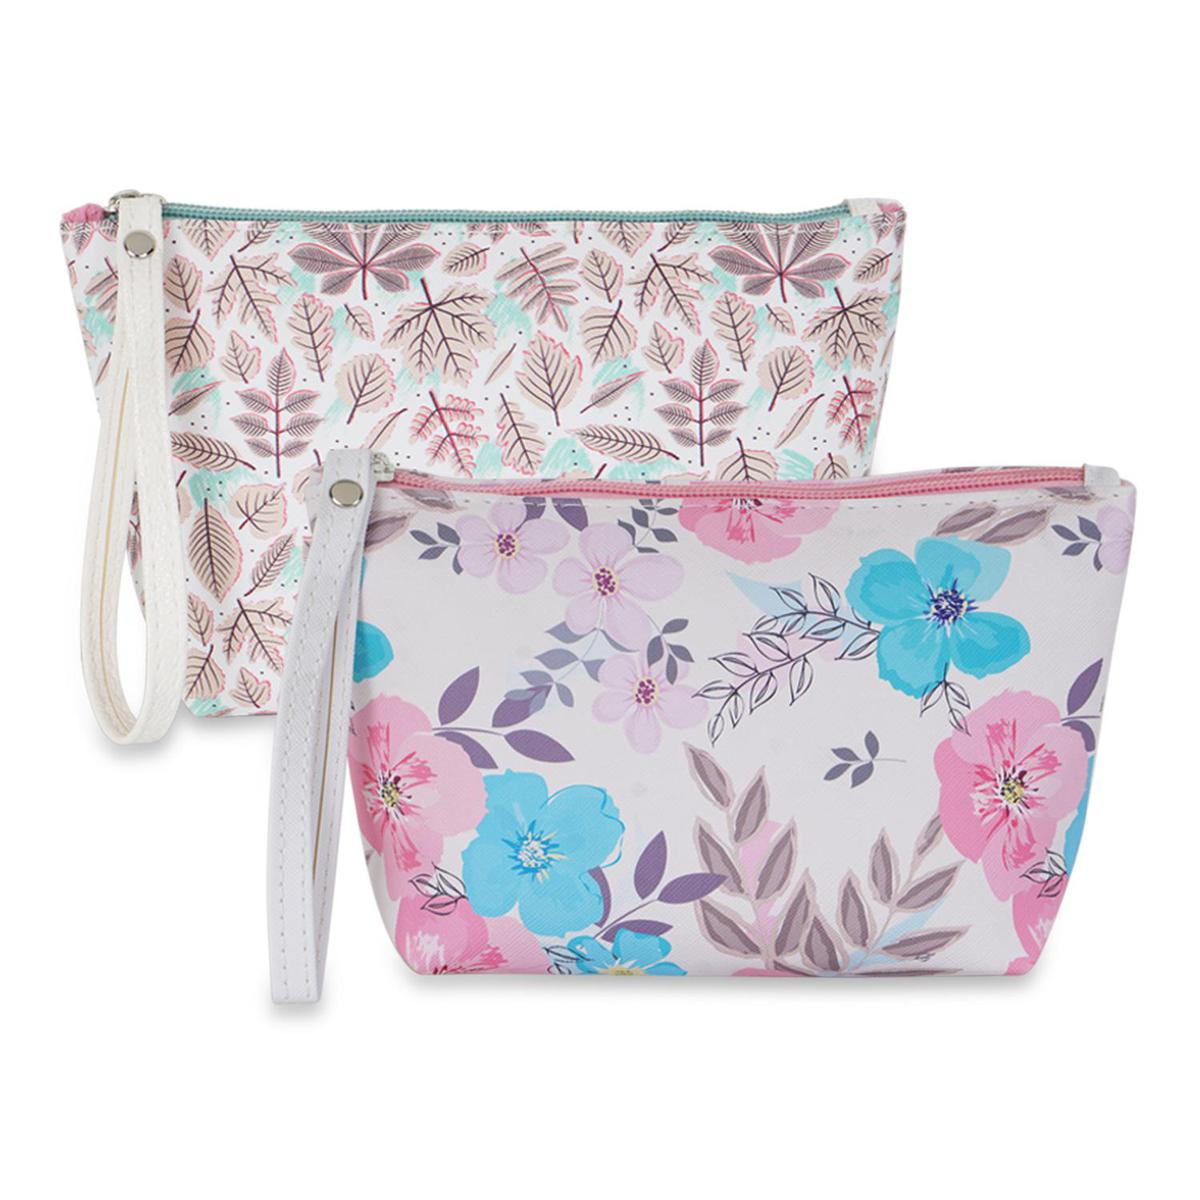 NFI essentials - PU Floral Print Makeup Pouch for Women, Stylish Pouches & Travel Organiser, Cosmetic Pouch, Toiletry Make up Bag for Girls Pack of 2